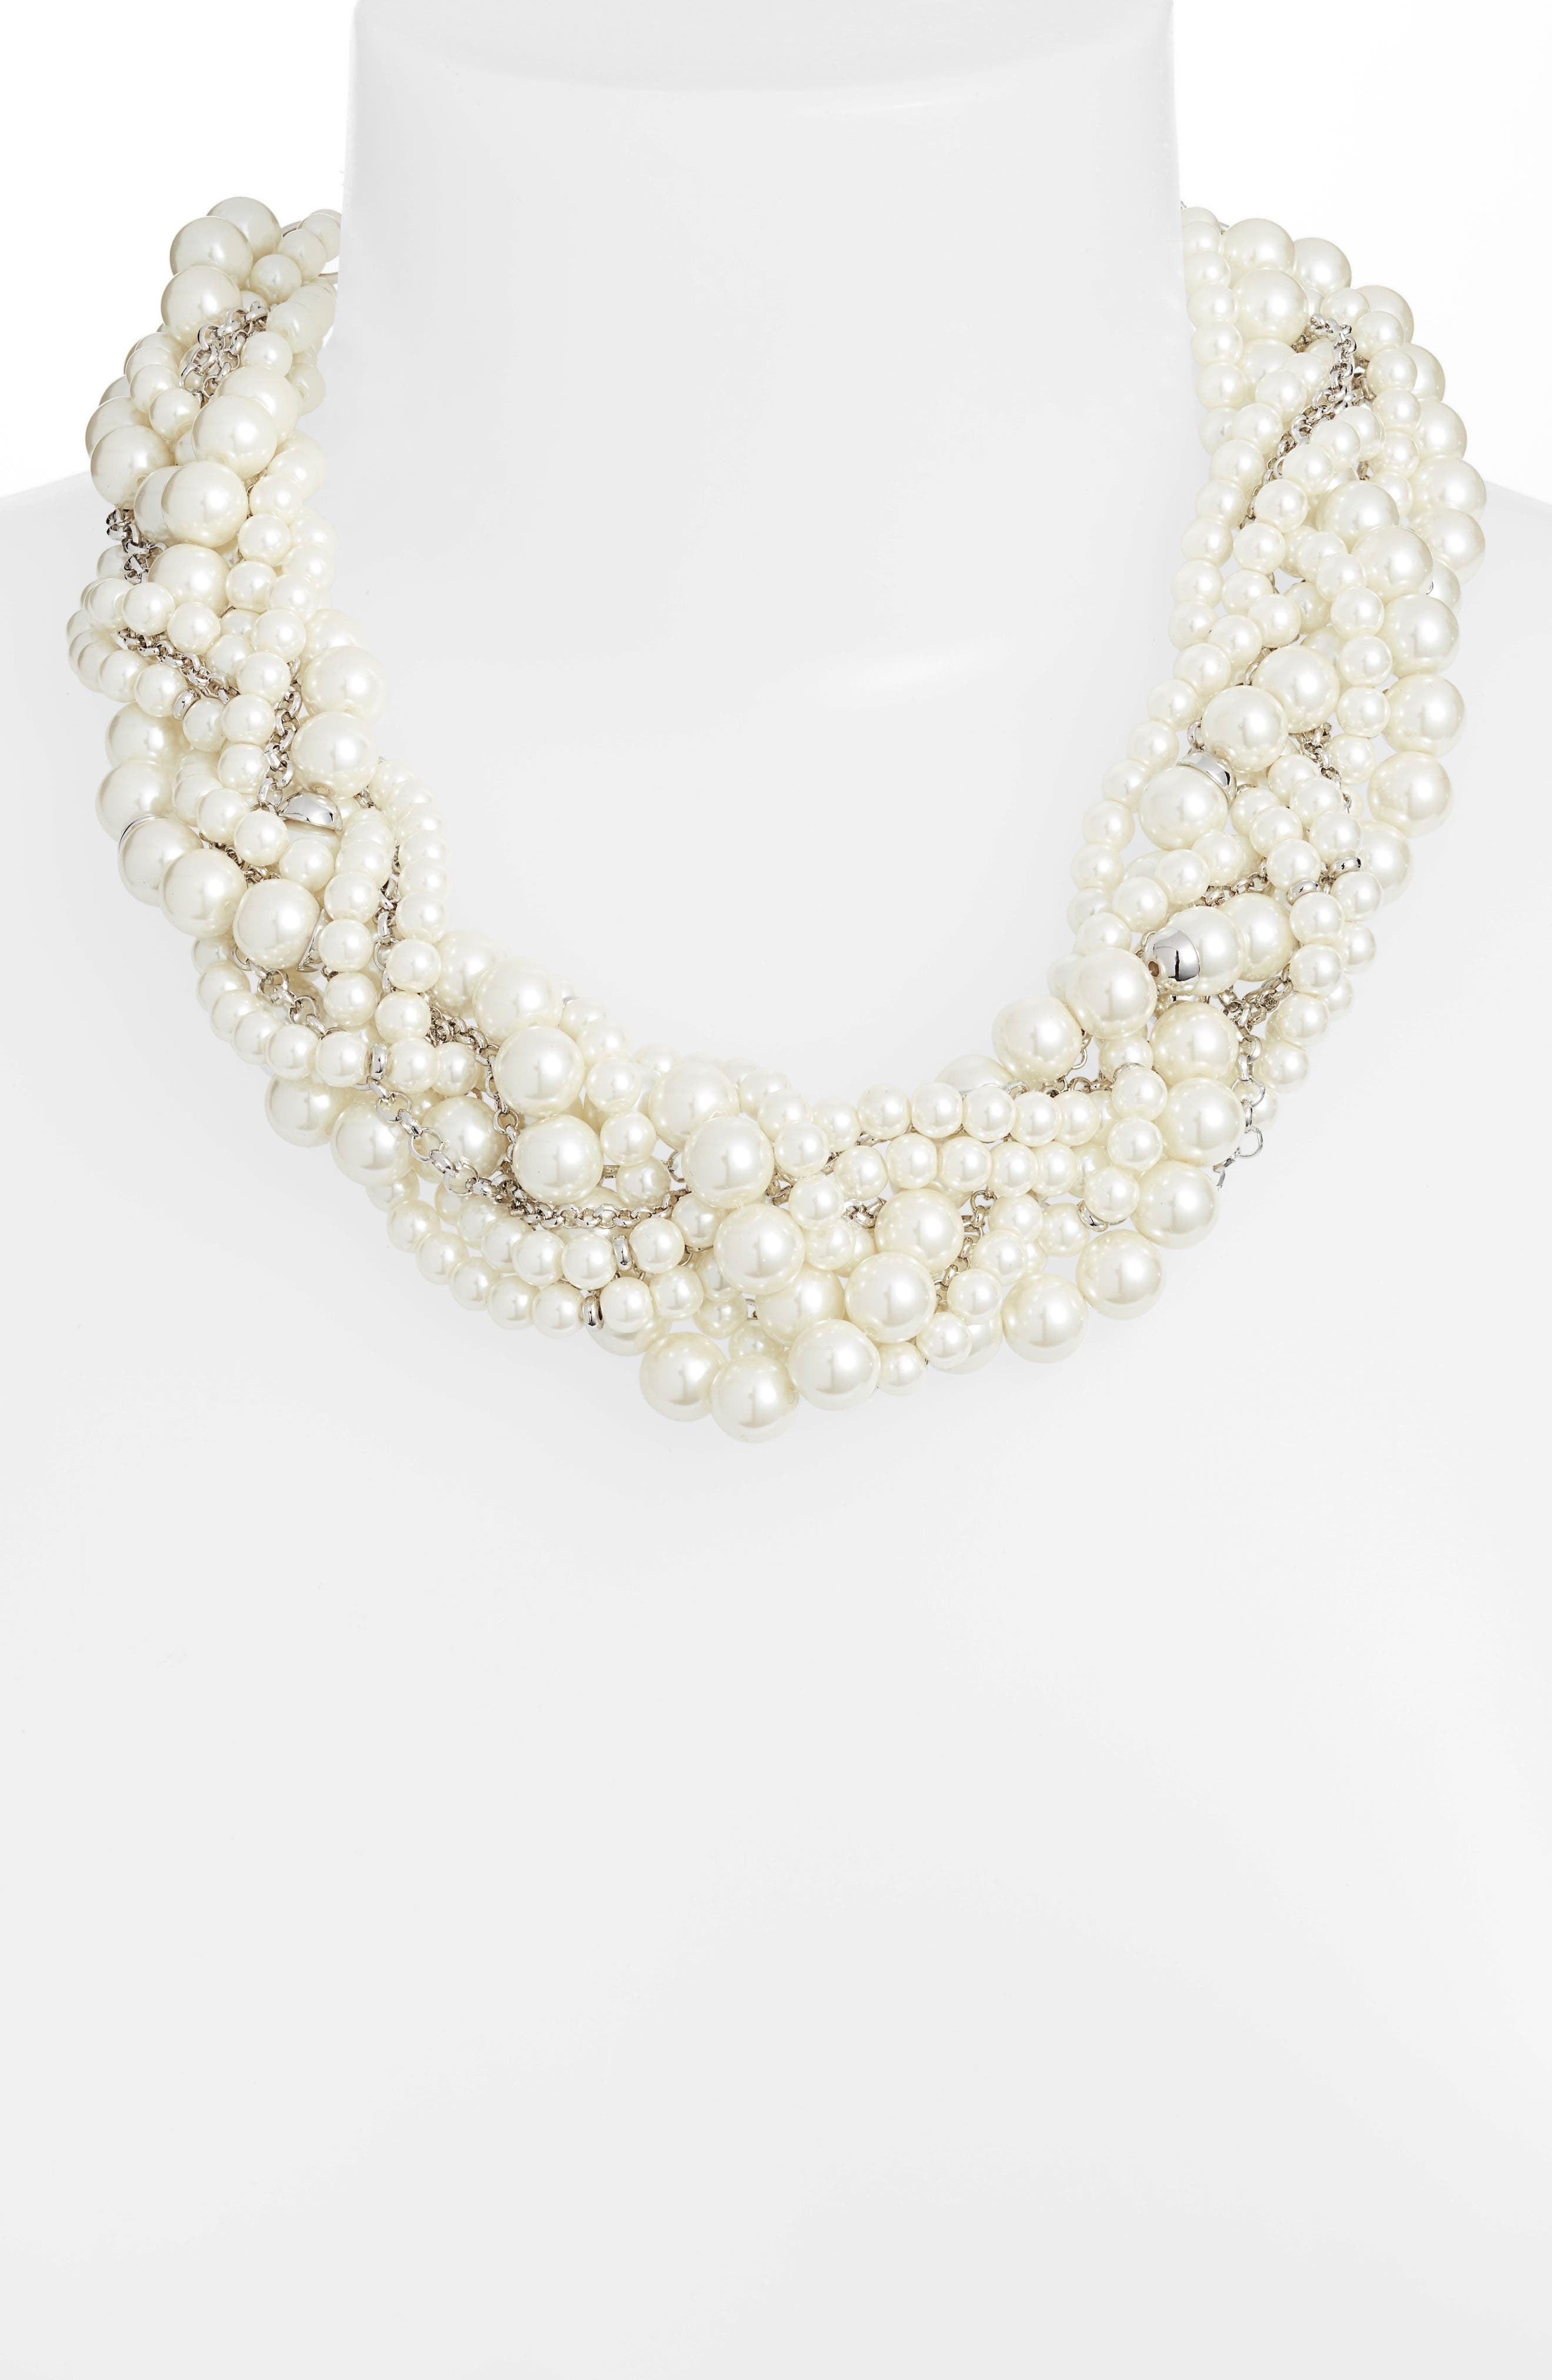 Braided Imitation Pearl Necklace,                             Alternate thumbnail 2, color,                             040